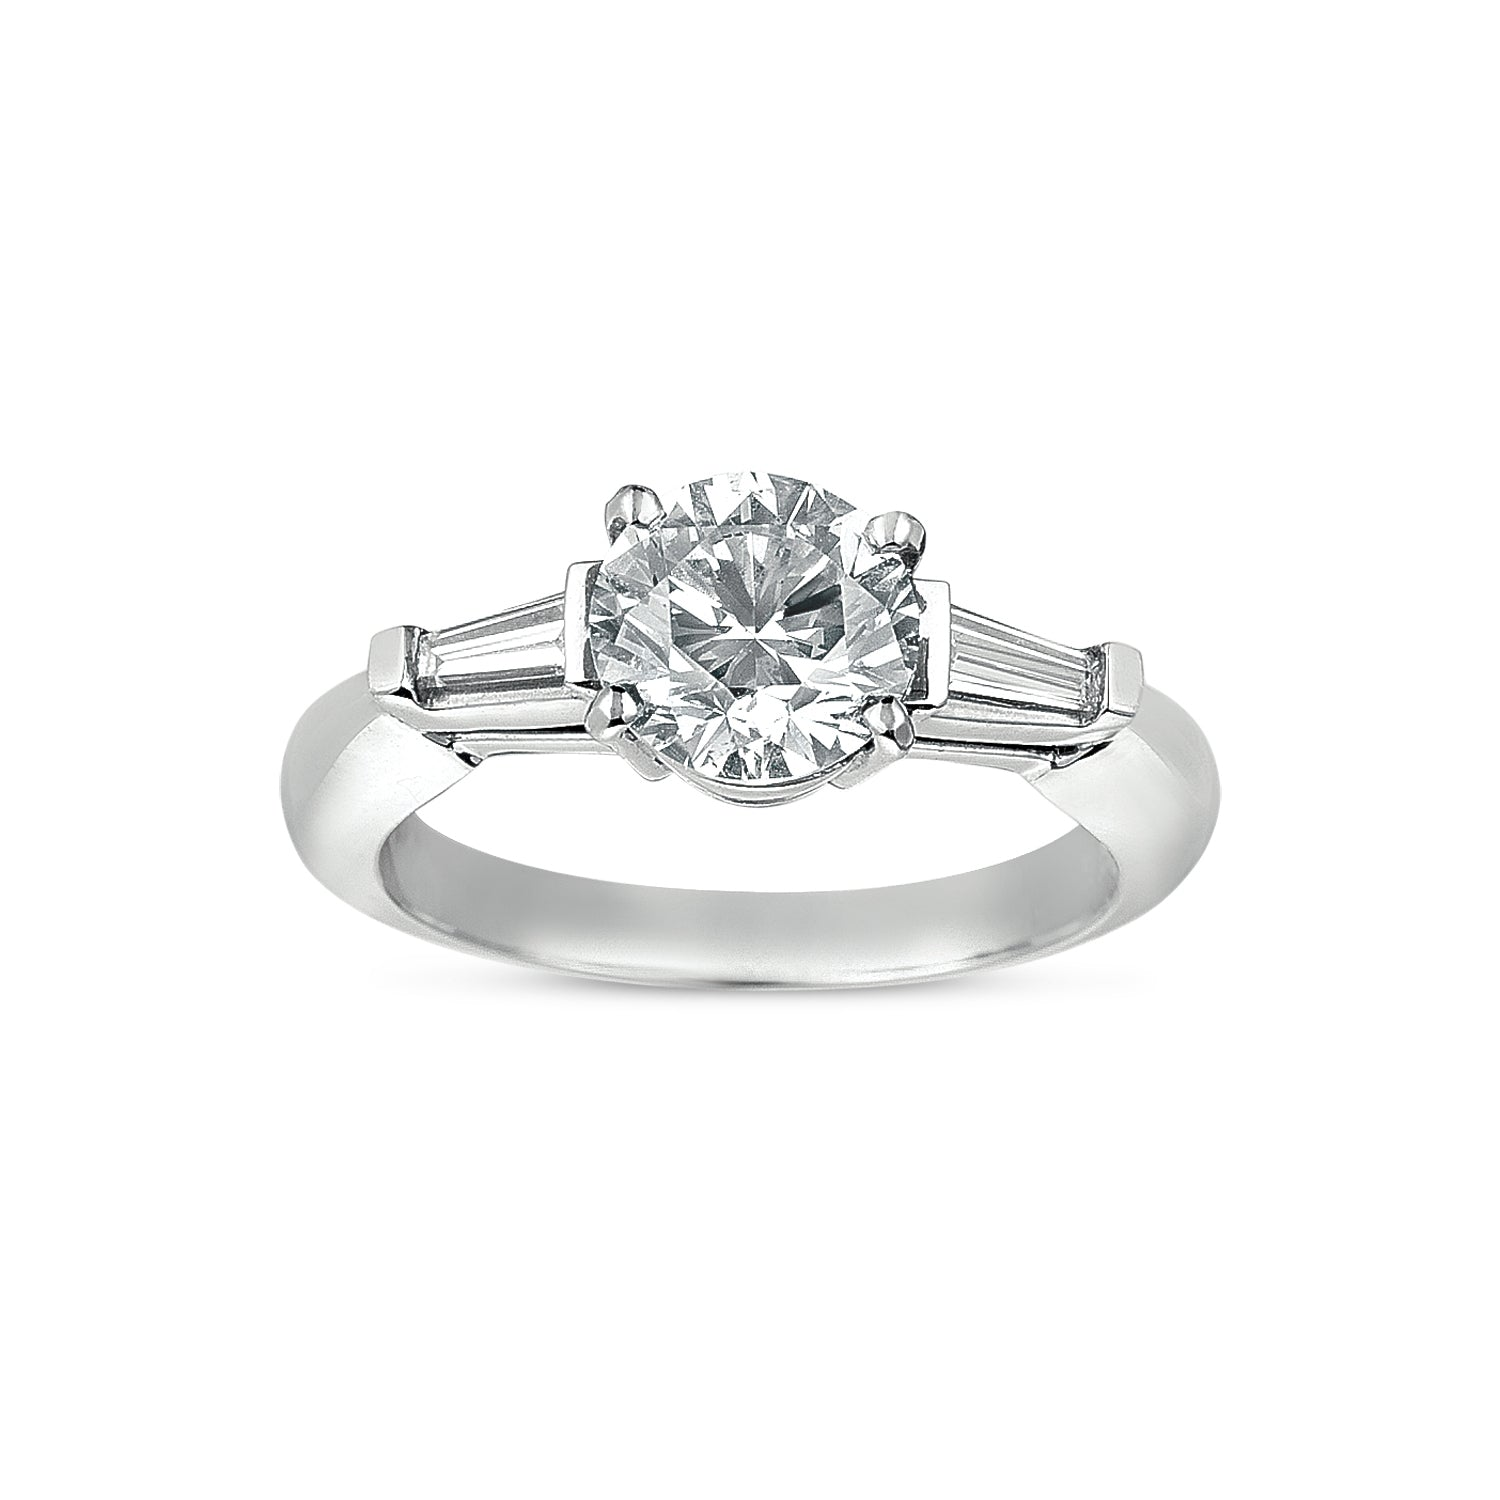 Diamond Ring with Tapered Baguettes, 18K White Gold